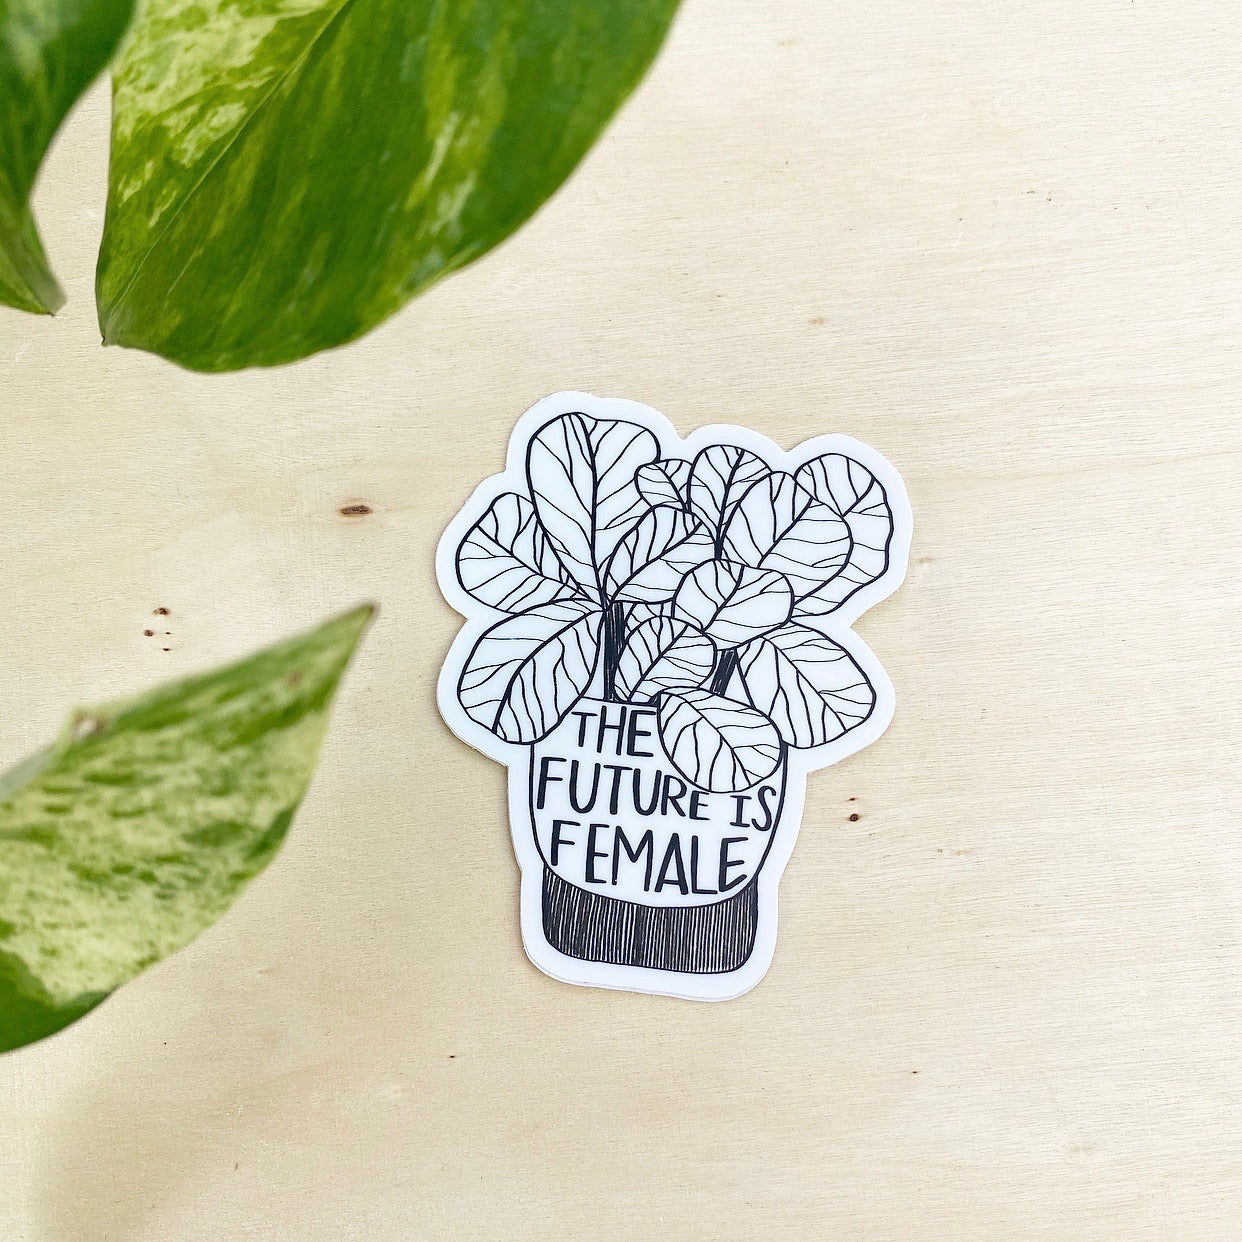 The Future is Female - vinyl sticker